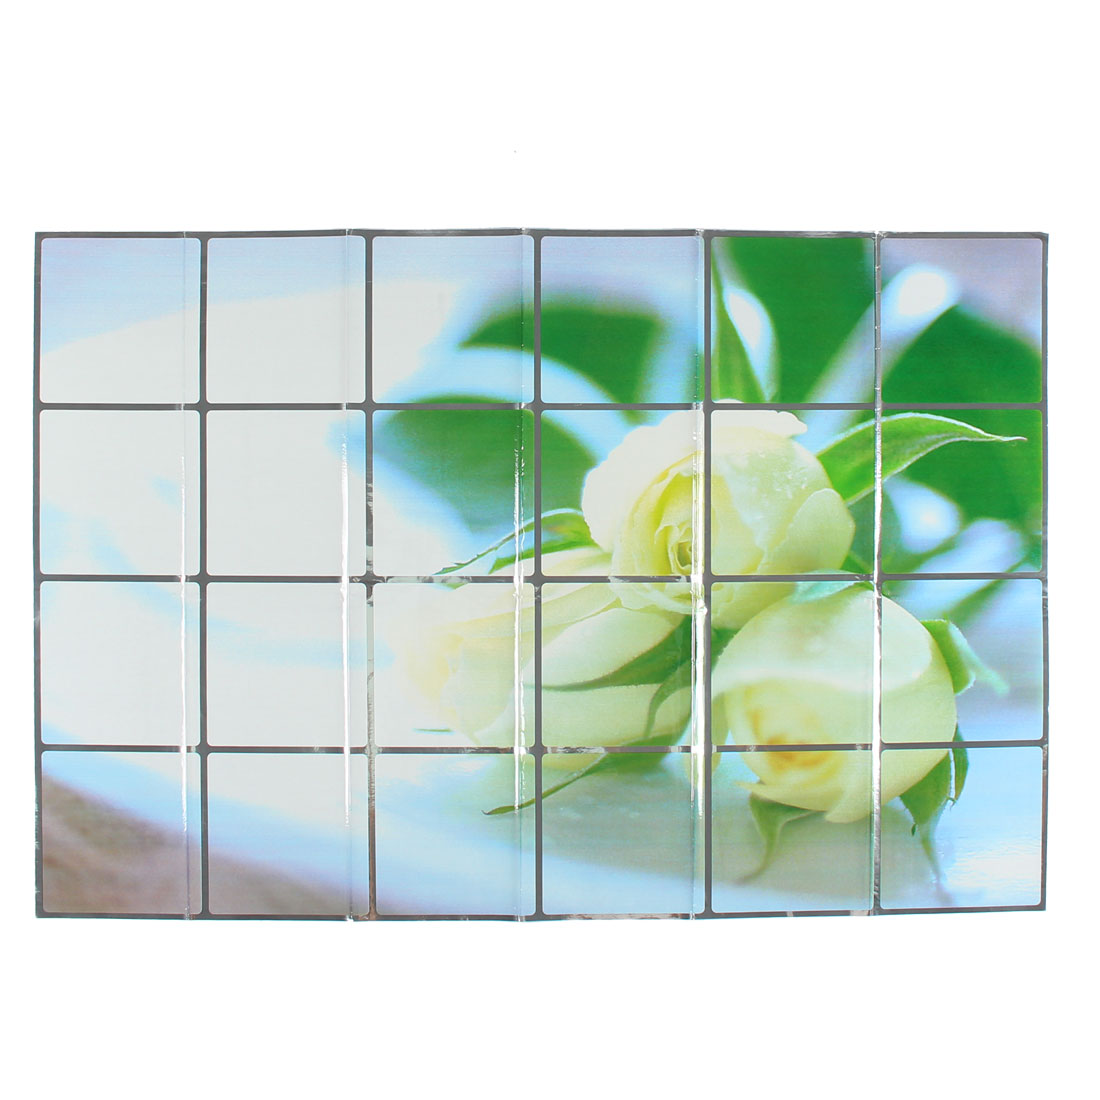 Kitchen Champagne Flowers Pattern Removable Self-adhesive Oilproof Wall Window Sticker 90 x 60cm